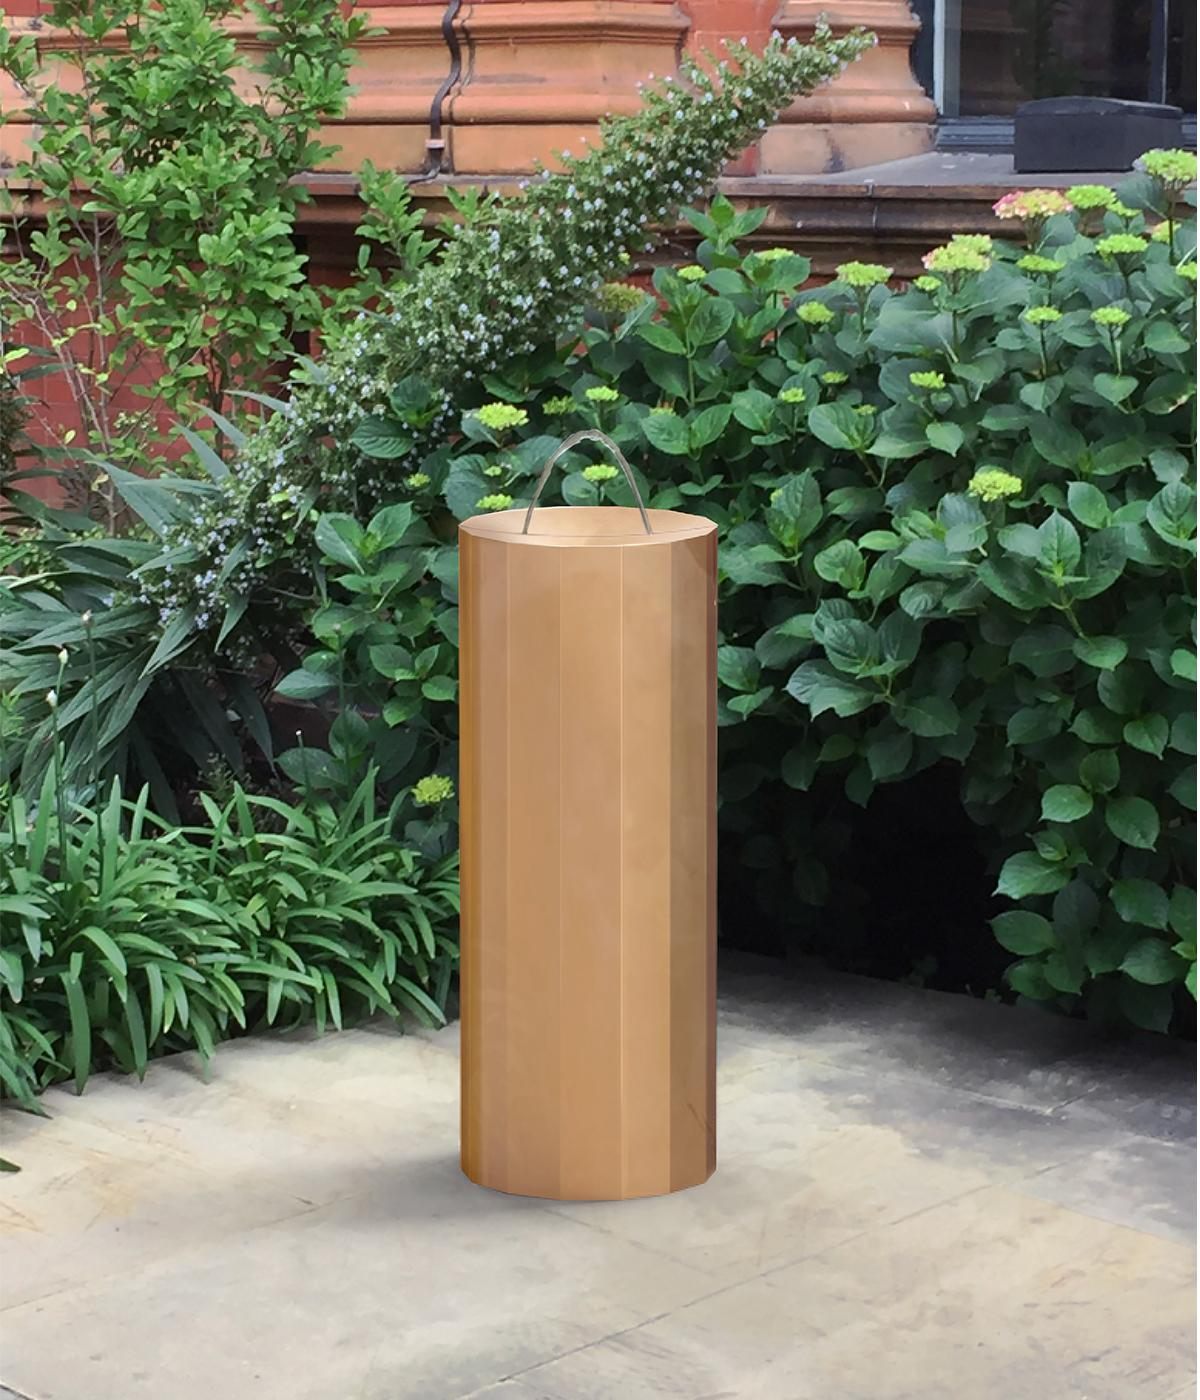 The Fleet Drinking Fountain by Michael Anastassiades